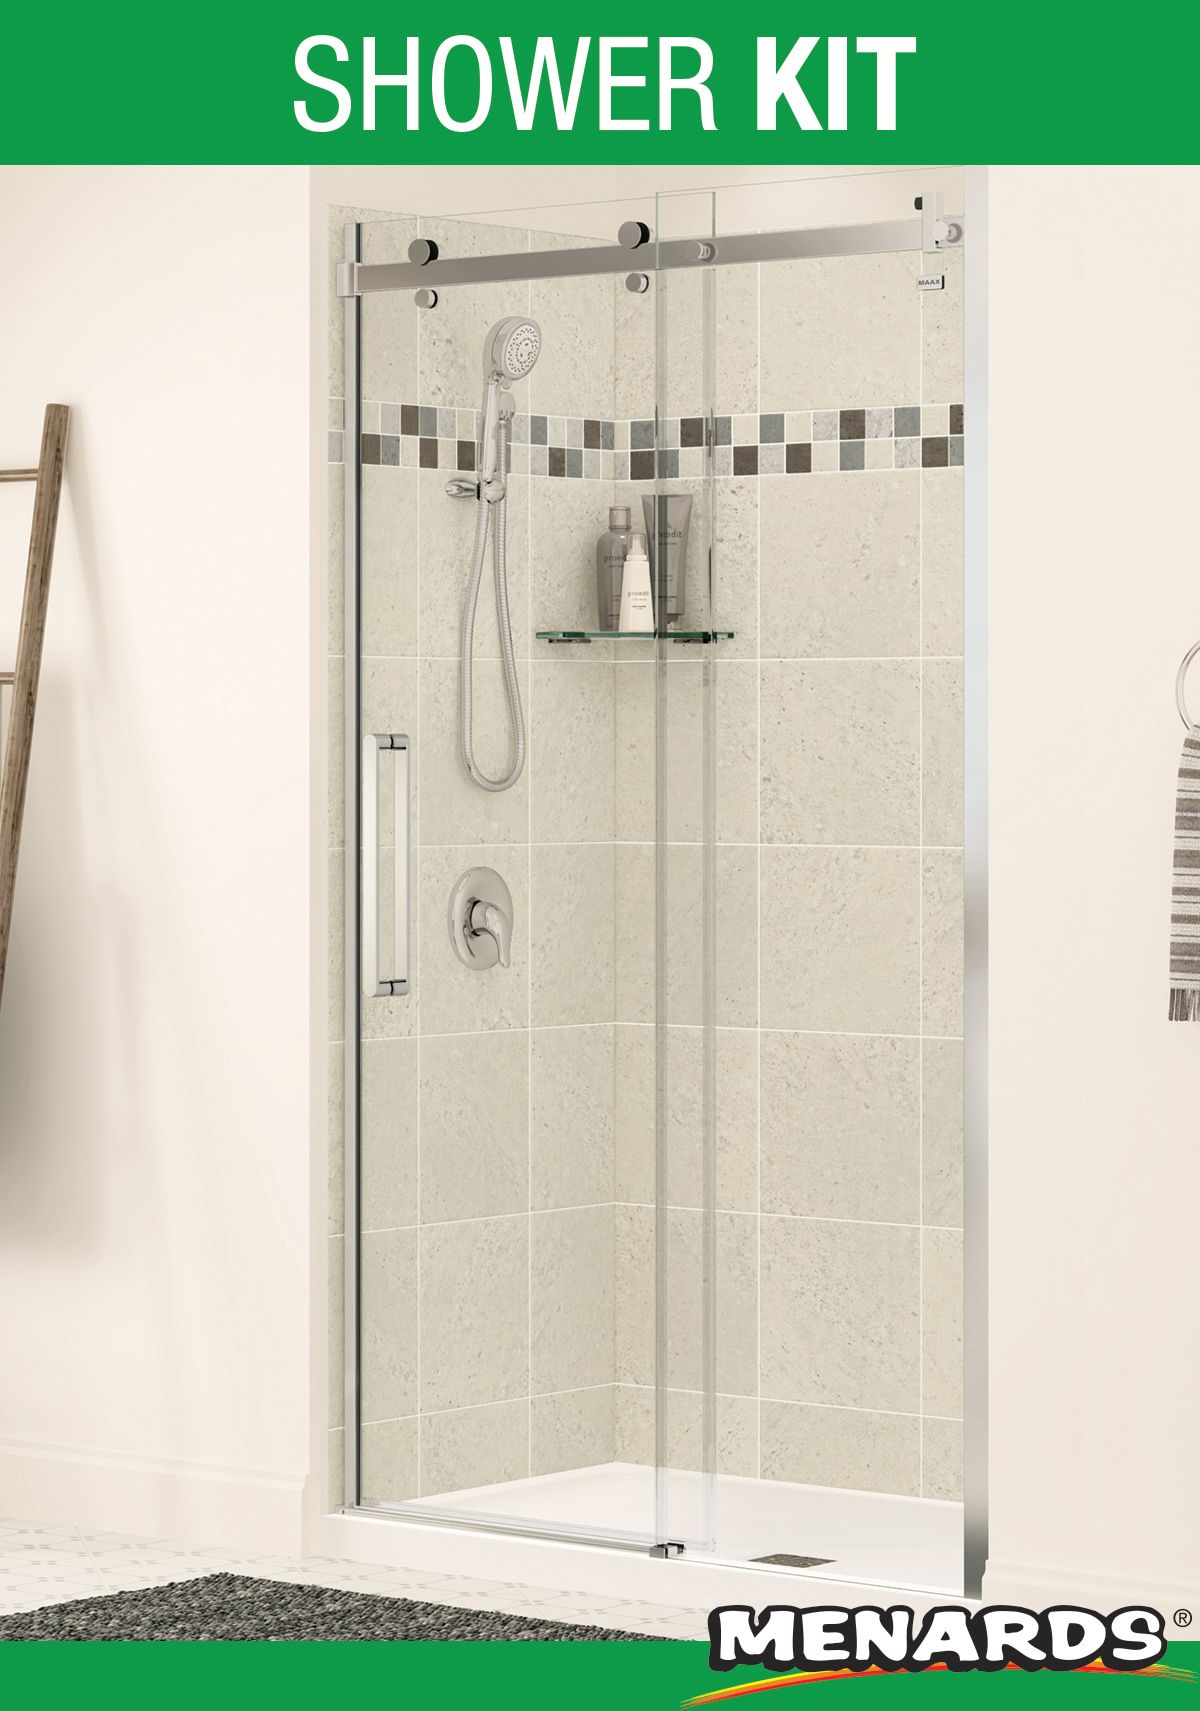 Create A Sophisticated Bathroom Space With Unparalleled Ease And